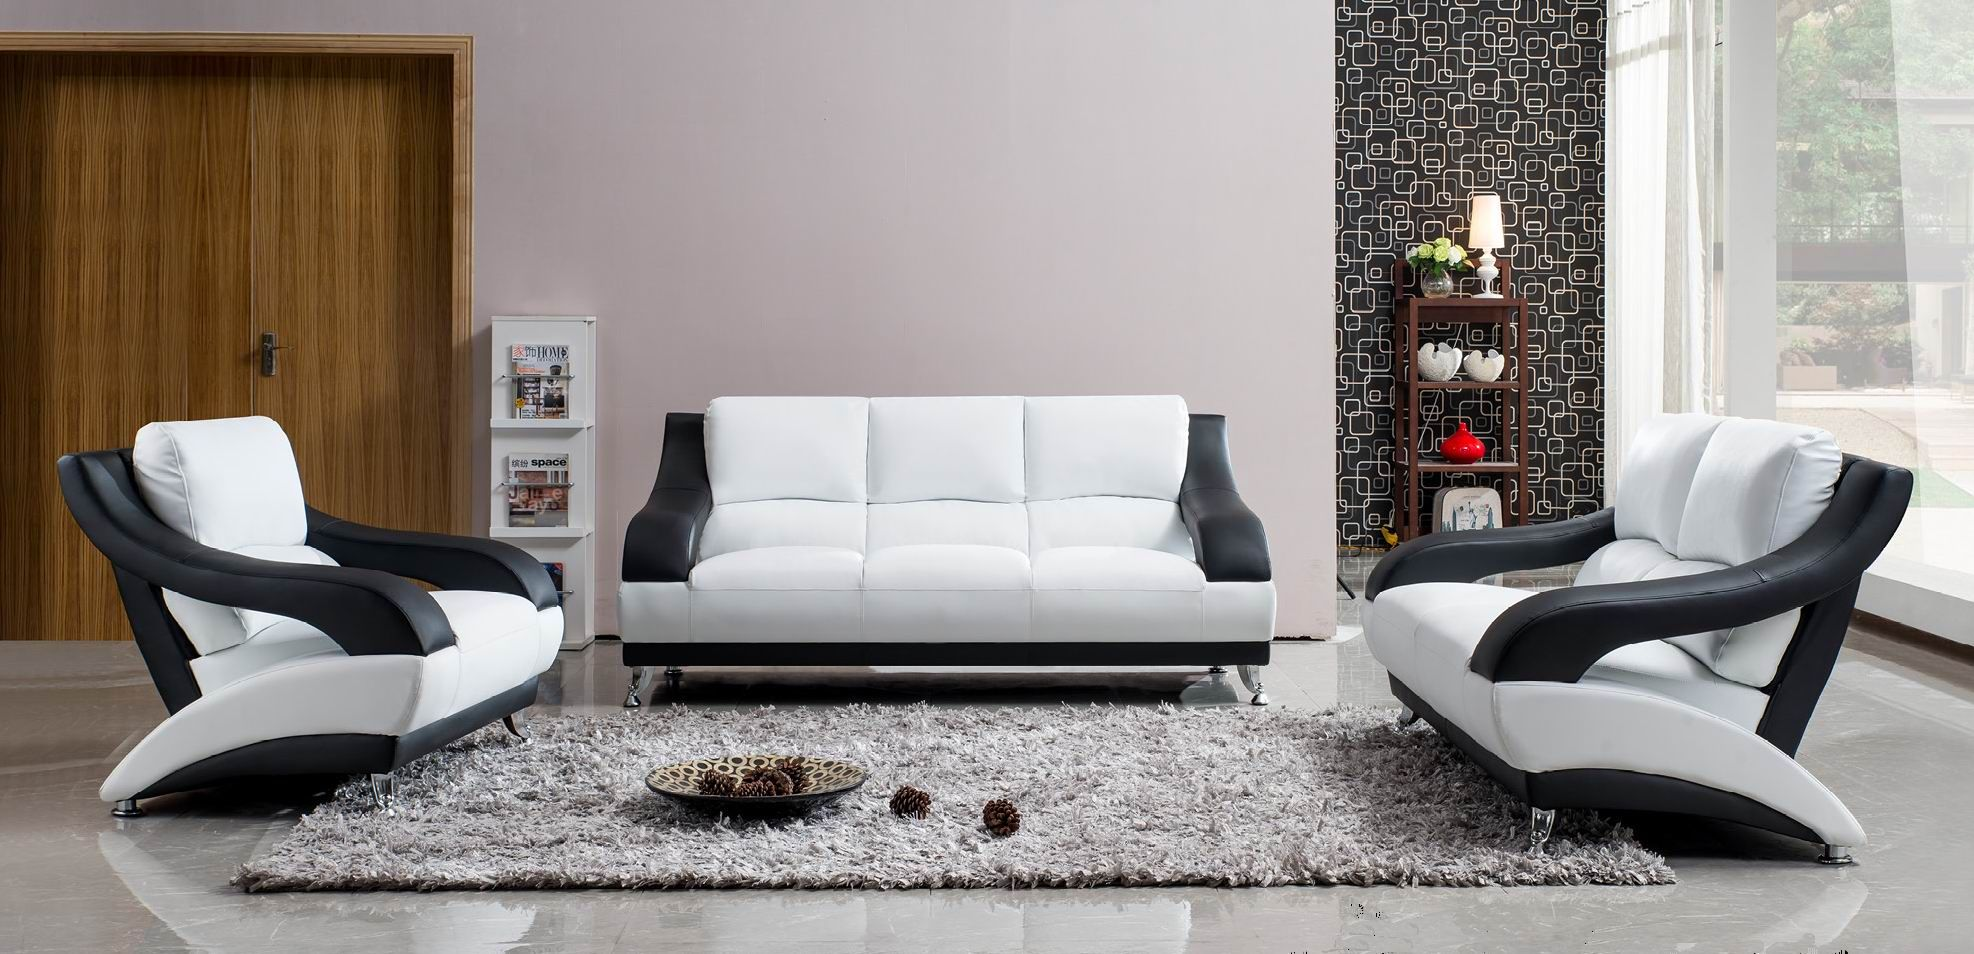 White Leather Sofa Set With Black Accents White Living Room Set White Leather Sofas Leather Living Room Furniture